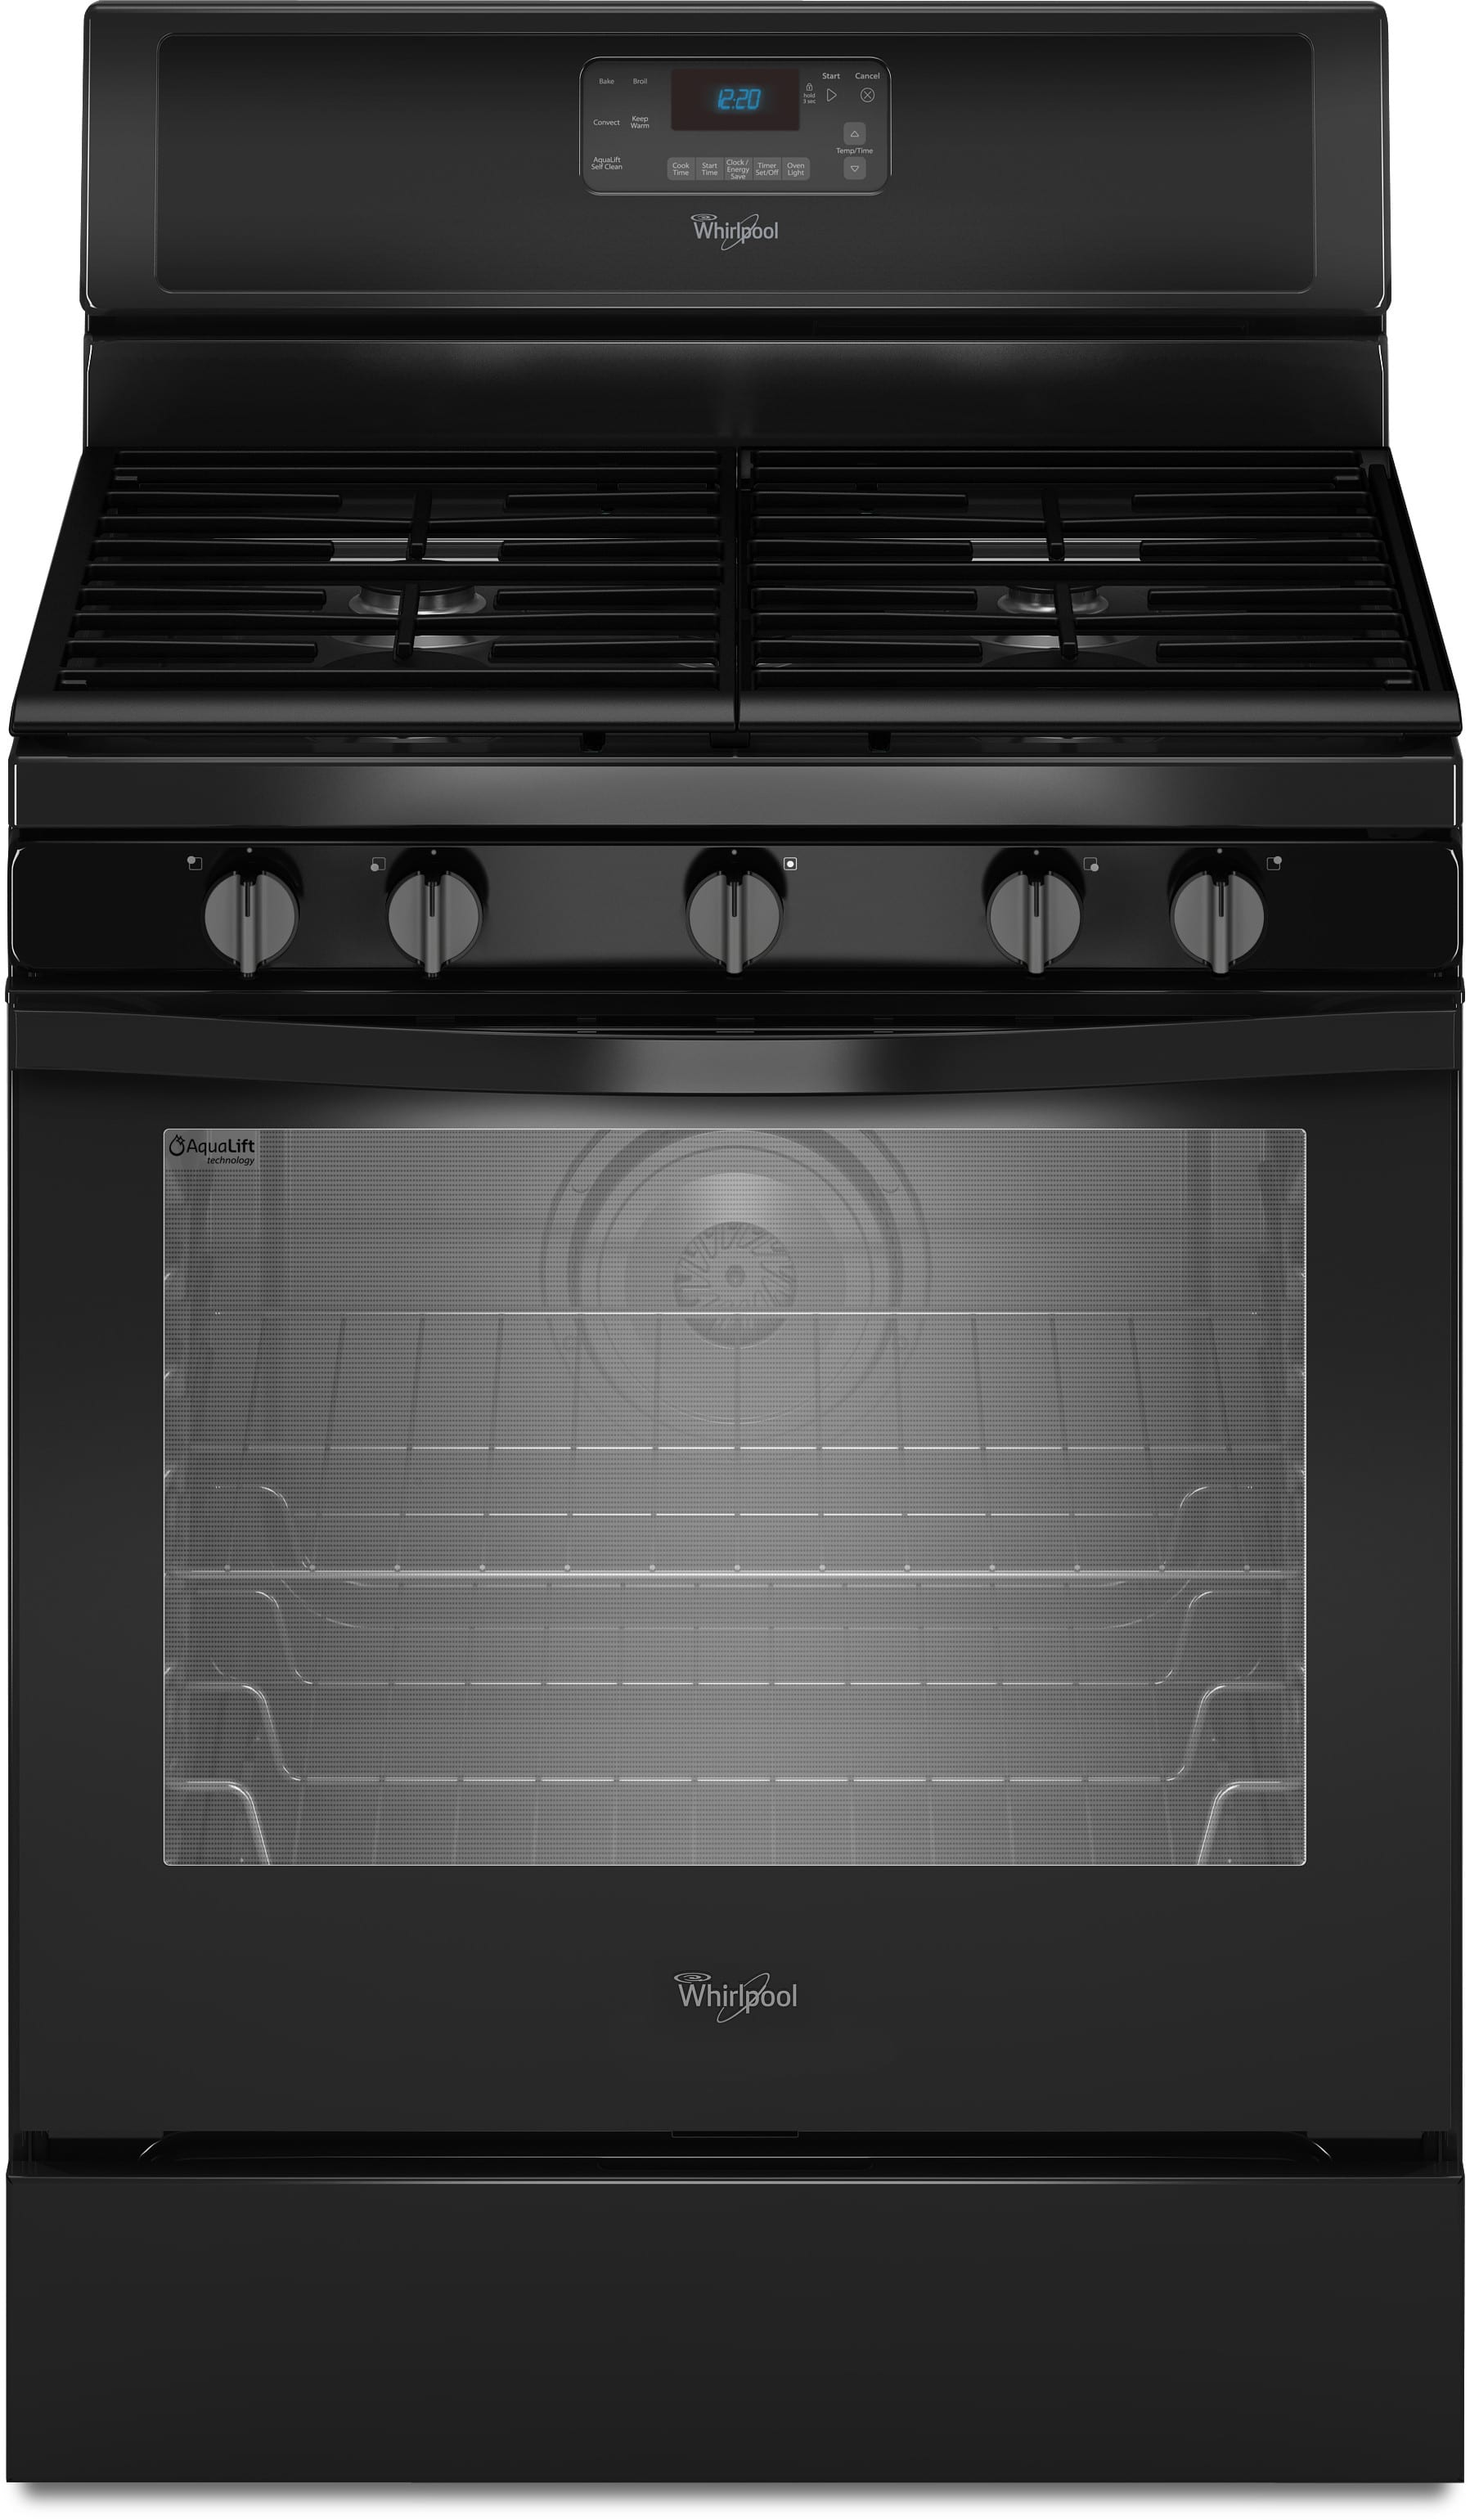 Countertop Warming Drawer Whirlpool Wfg540h0eb 30 Inch Freestanding Gas Range With